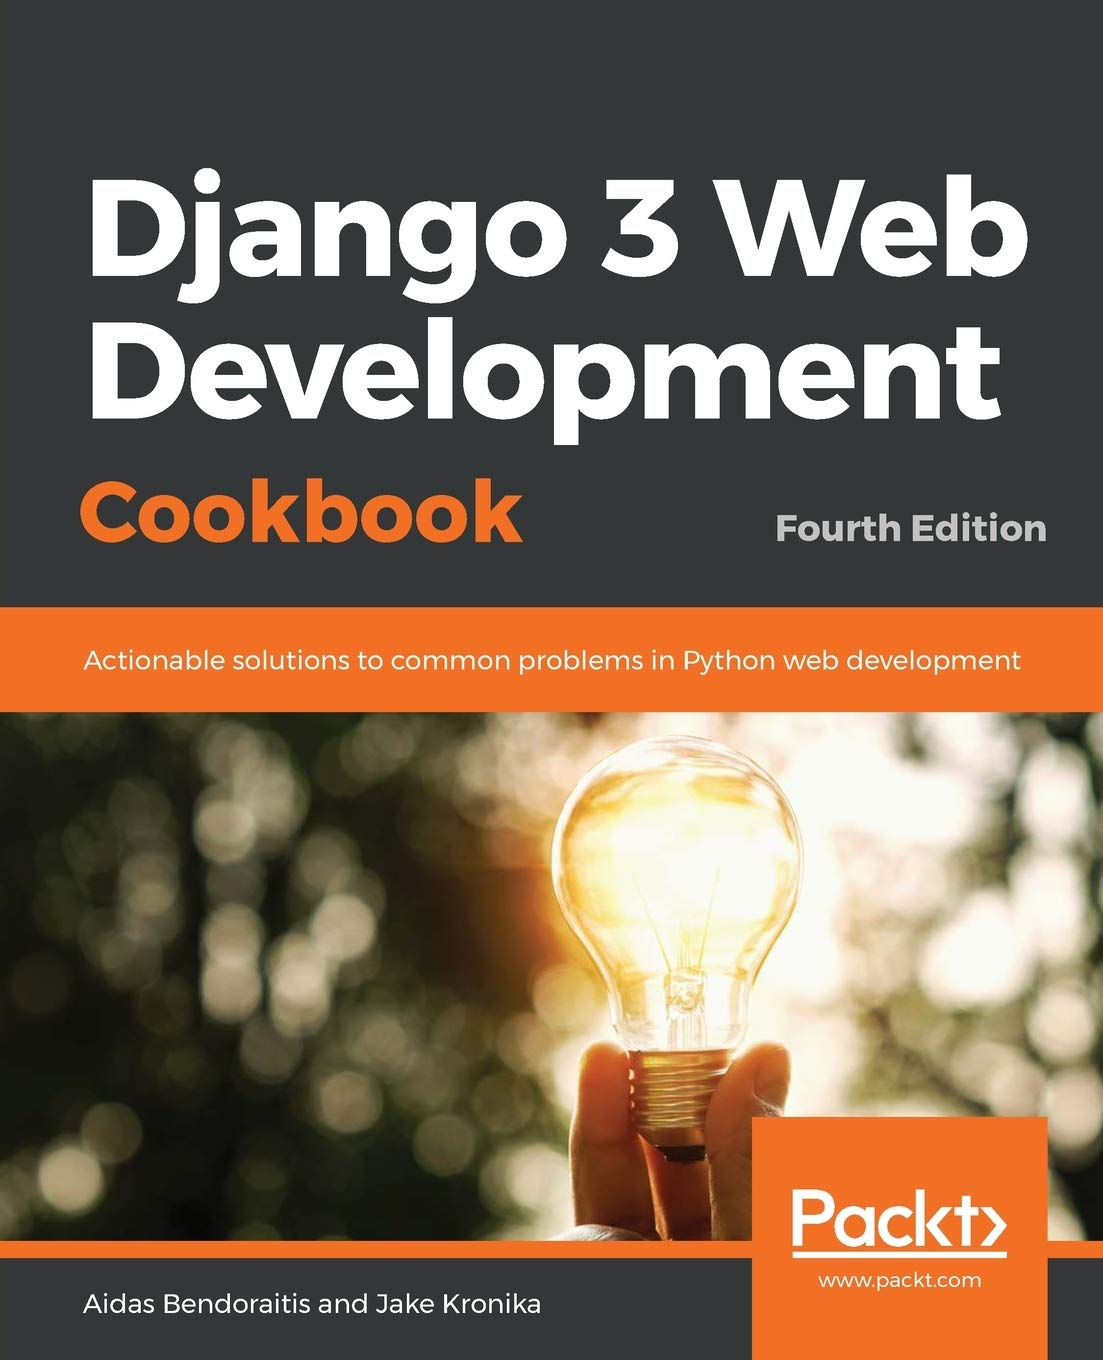 Image OfDjango 3 Web Development Cookbook: Actionable Solutions To Common Problems In Python Web Development, 4th Edition